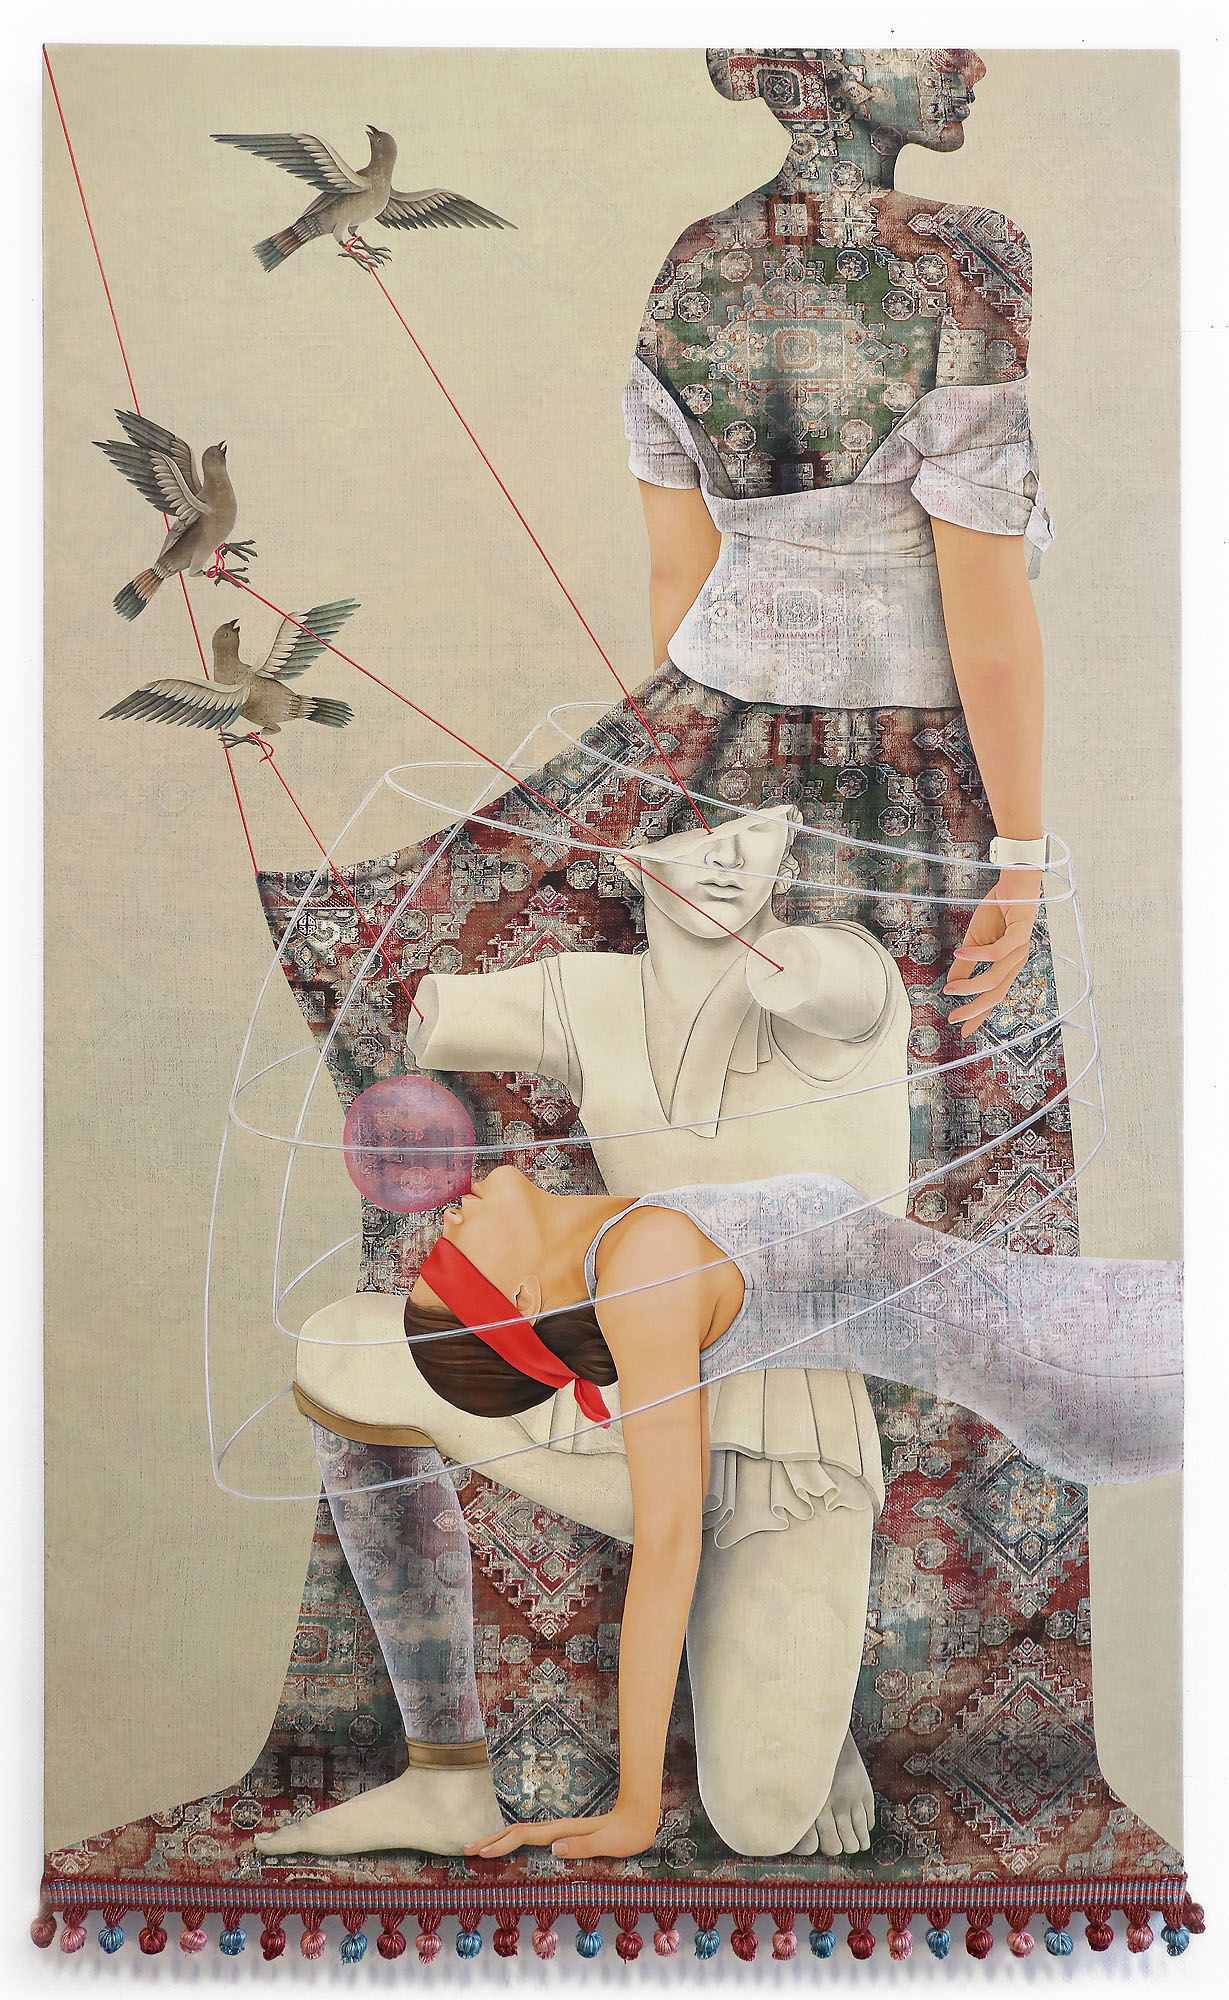 Arghavan Khosravi    You're Free to Fly , 2019  Acrylic on found textile mounted on wood panel   50 x 32 inches